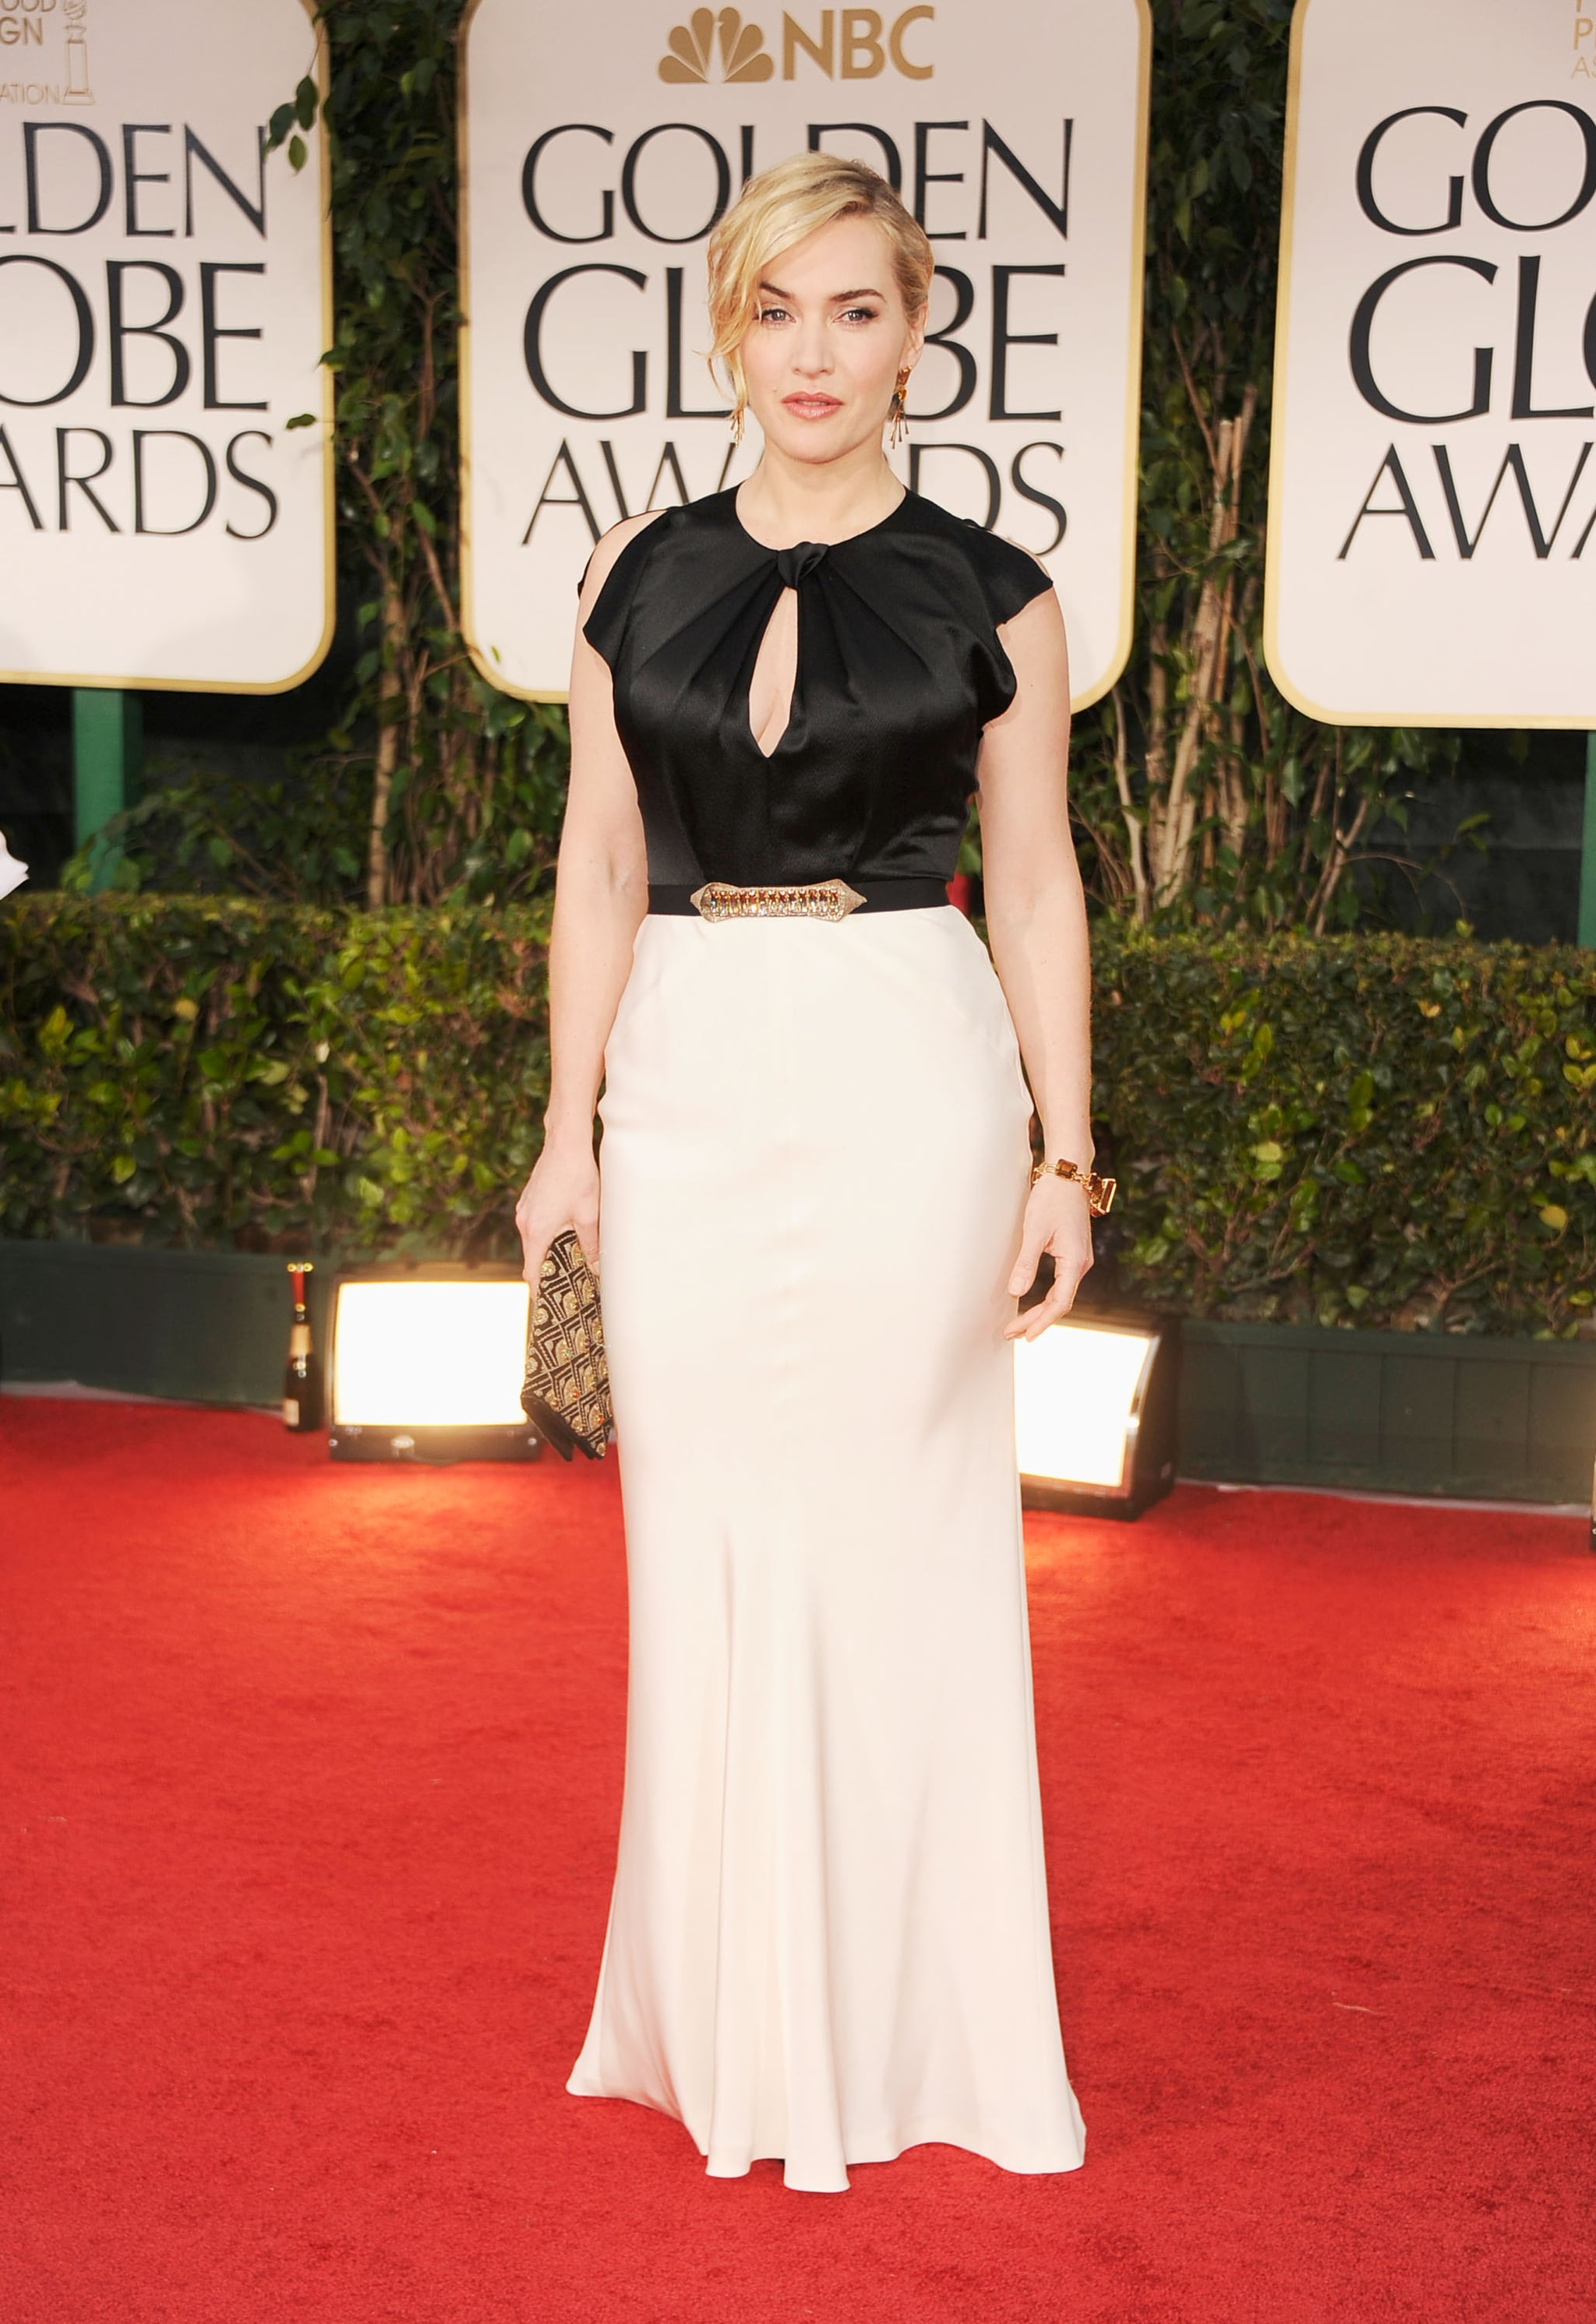 Golden Globes 2012 Red Carpet Dress Pictures Popsugar